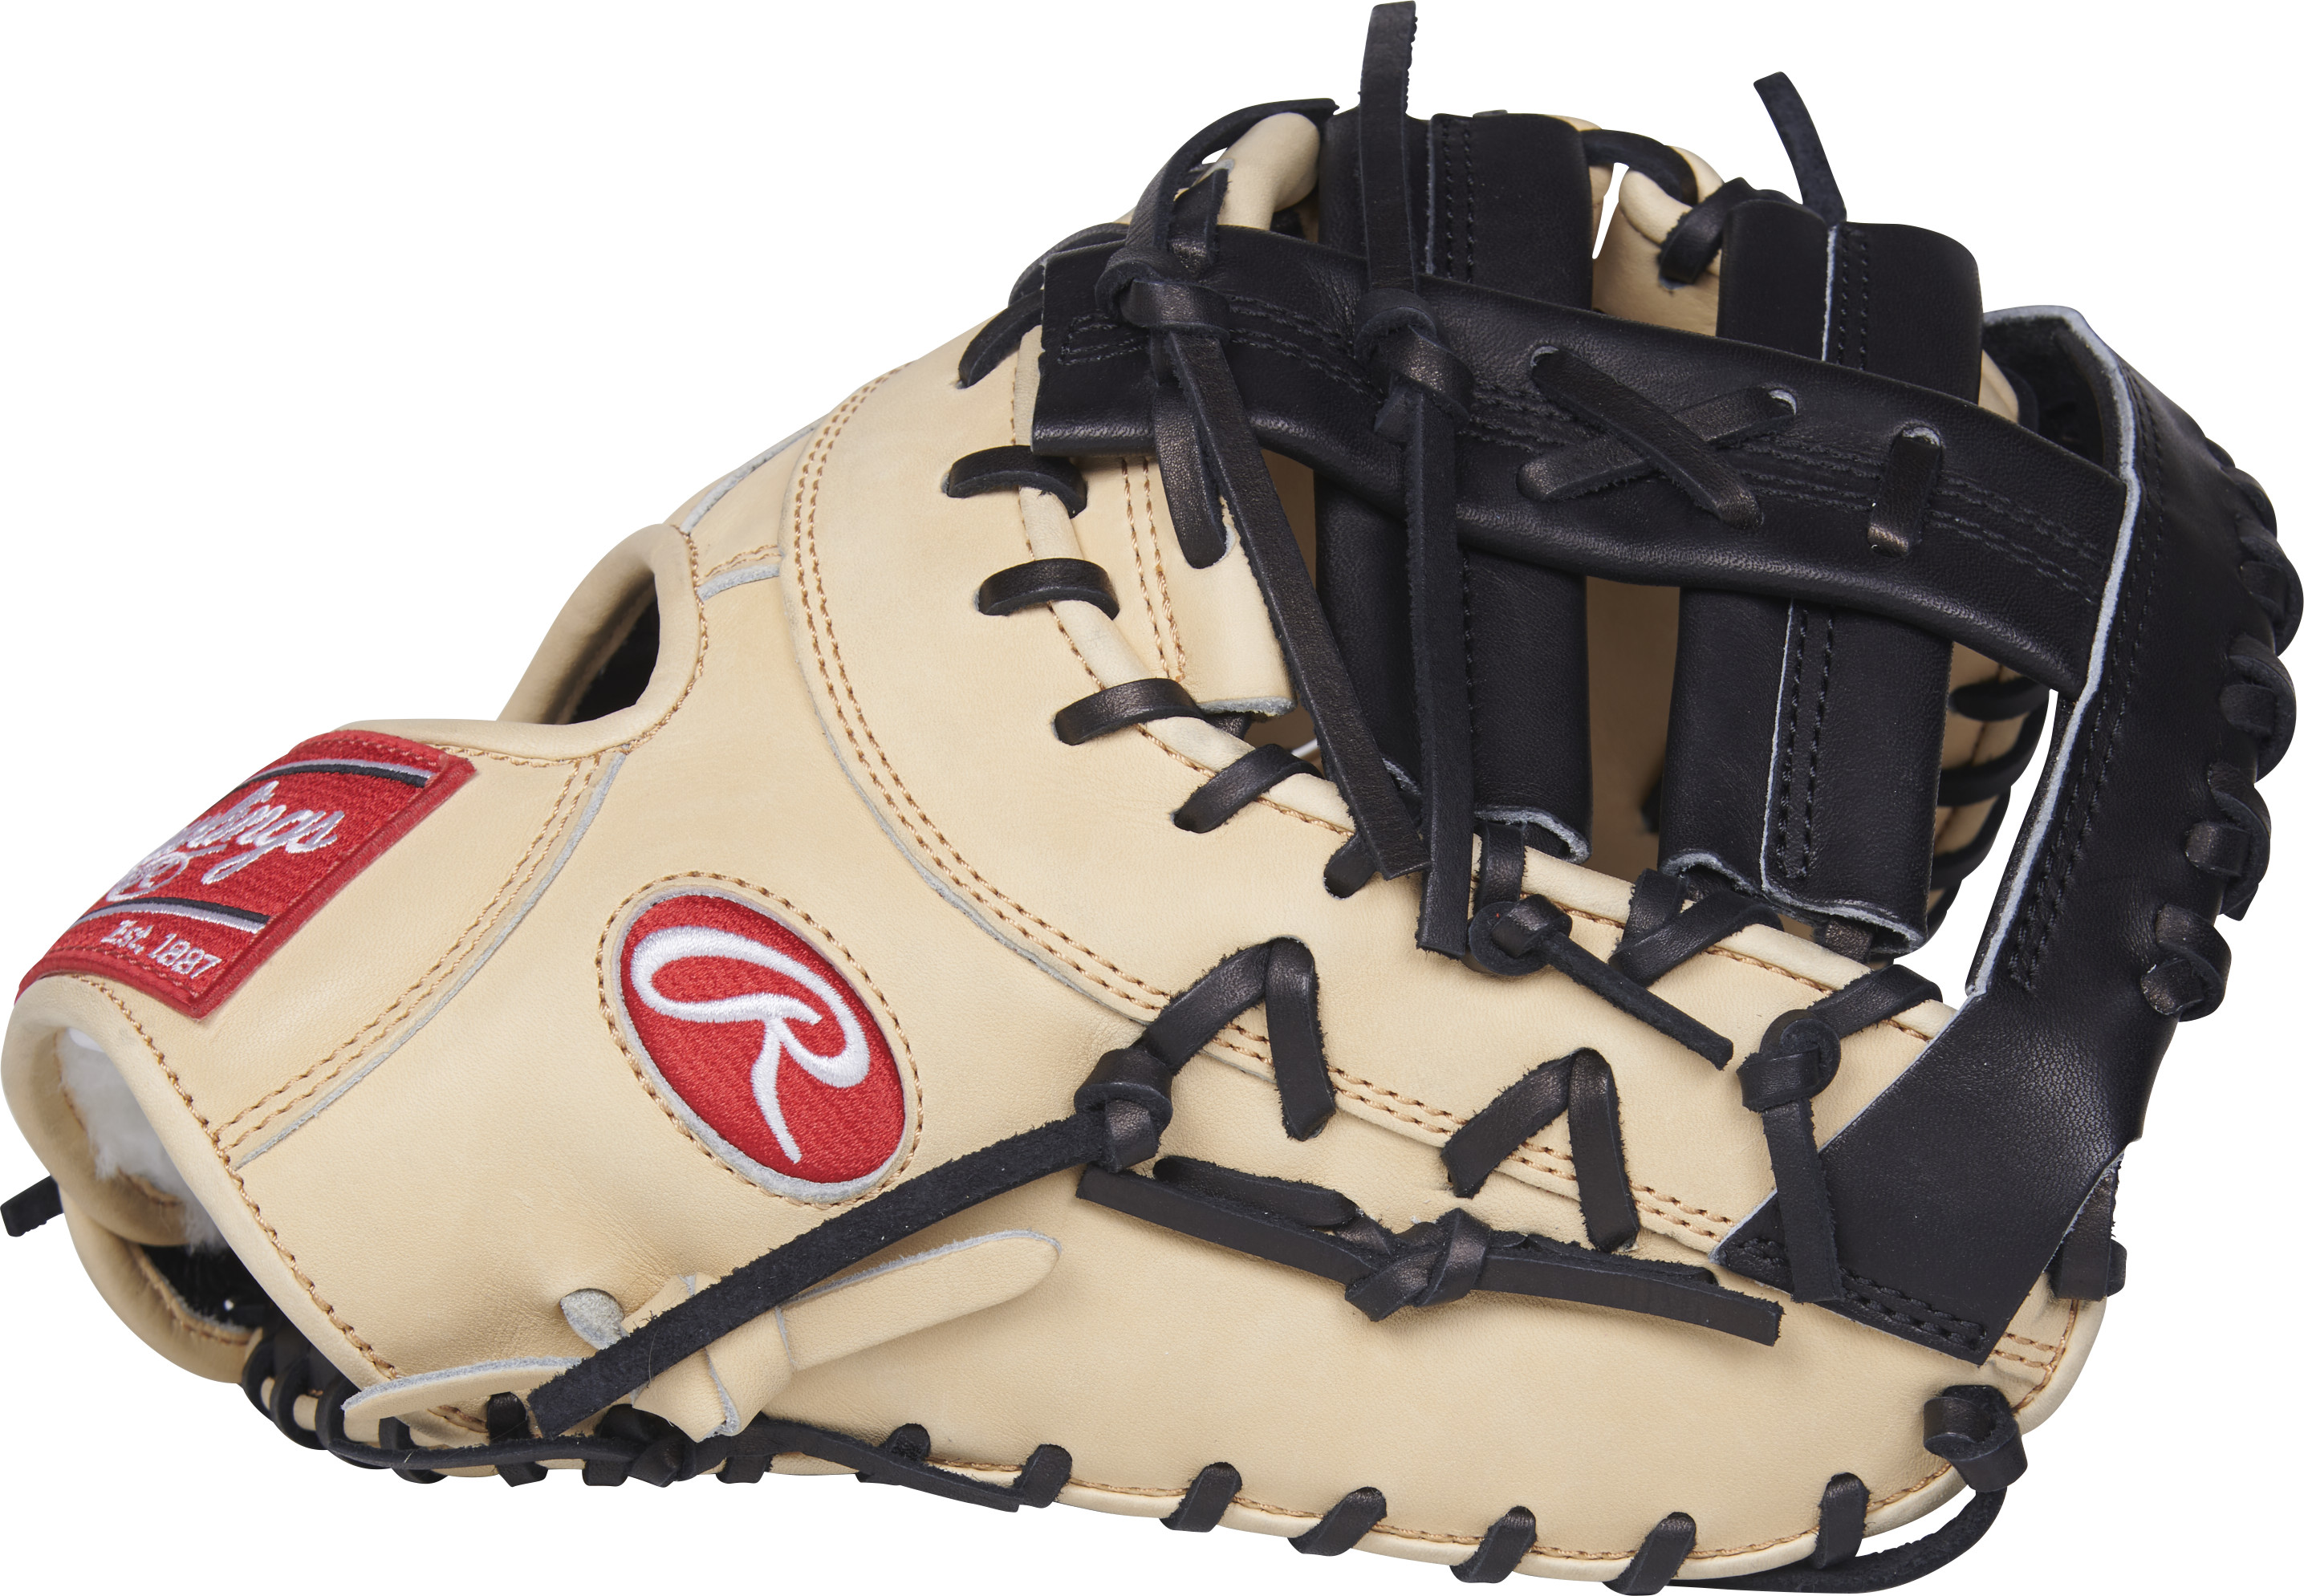 http://www.bestbatdeals.com/images/gloves/rawlings/PROSDCTC-3.jpg